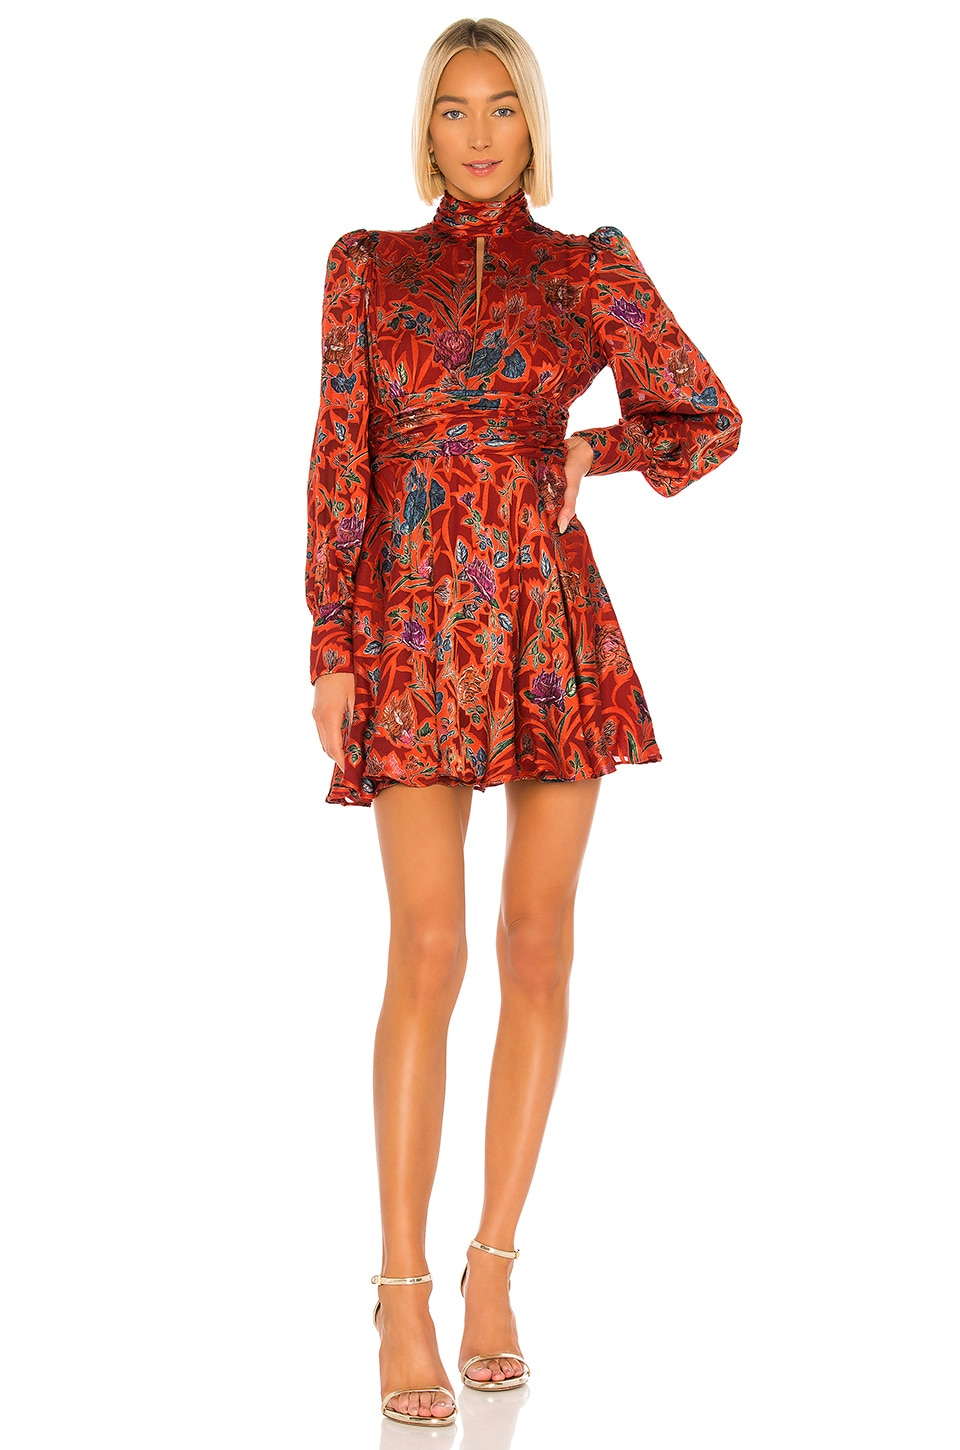 Alexis X REVOLVE Jazmina Dress in Red Floral